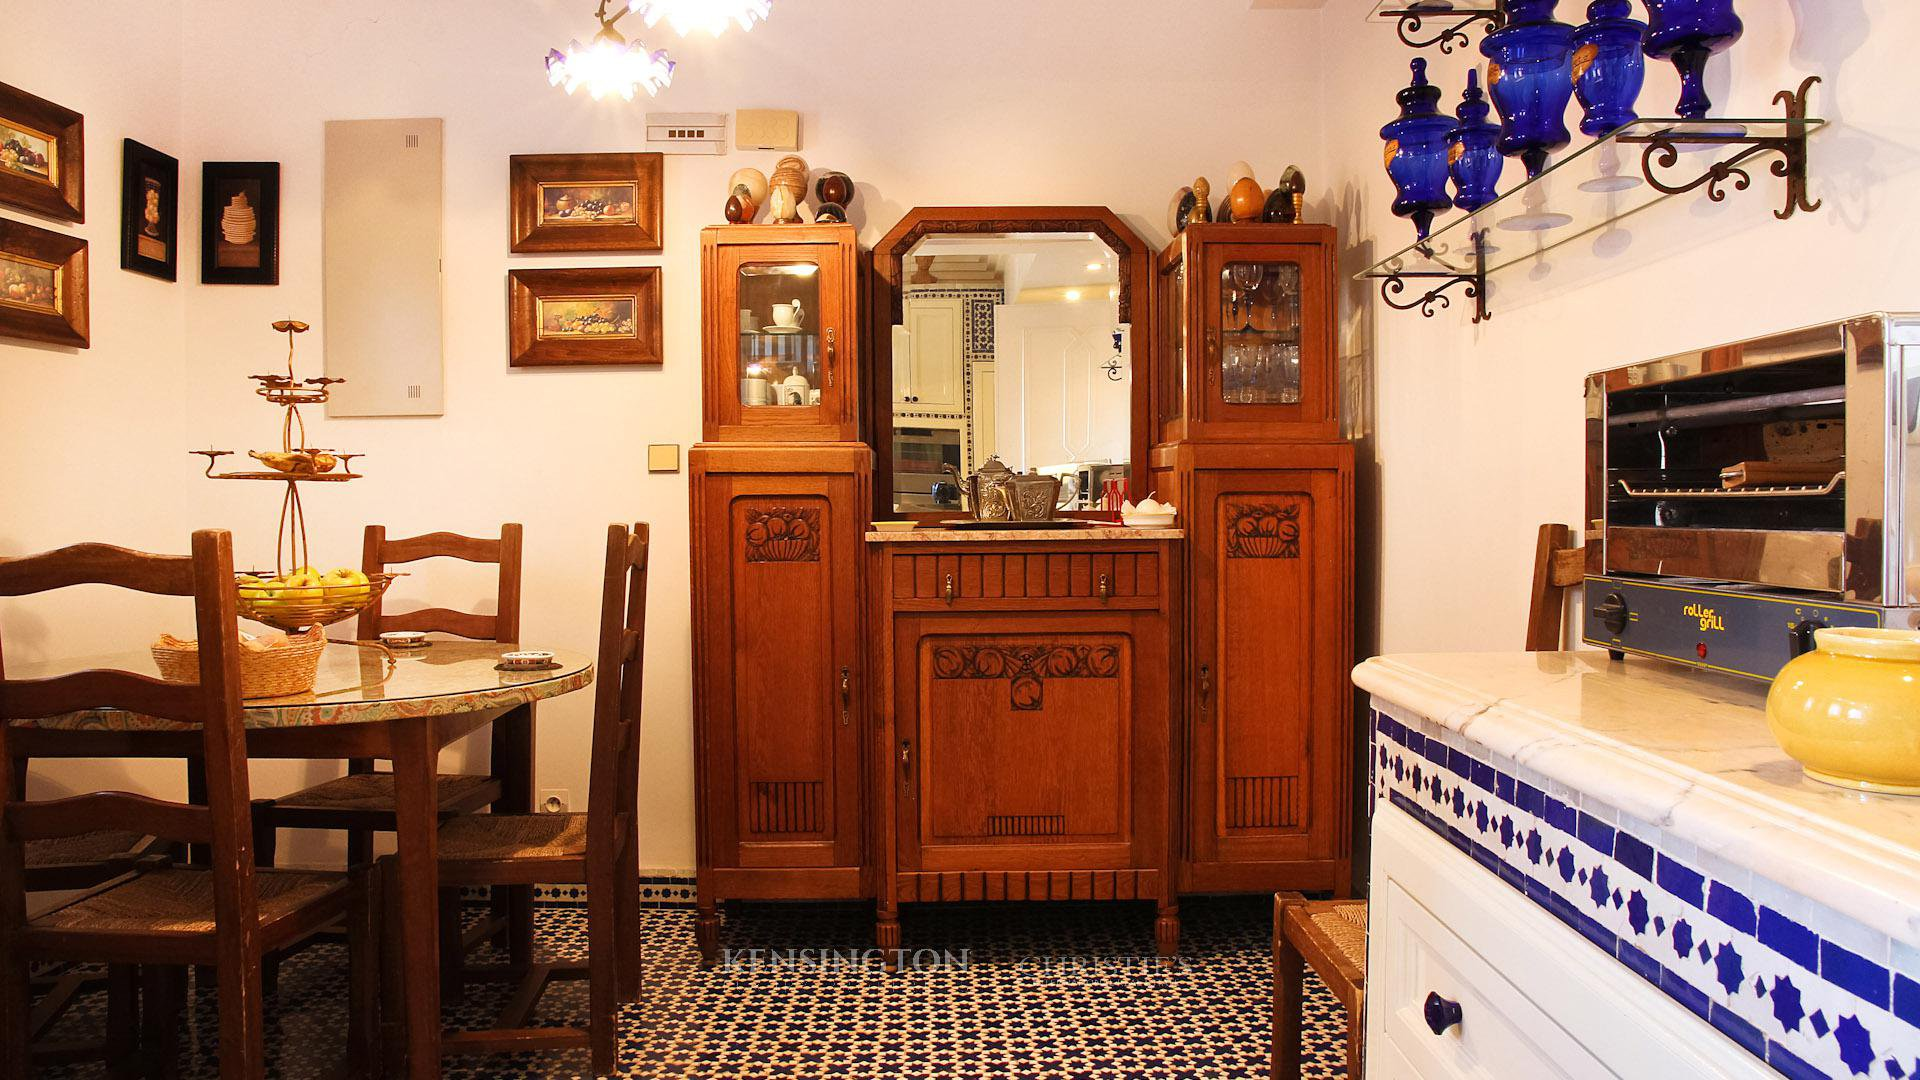 KPPM00925: Apartment Tesoro Apartment Marrakech Morocco